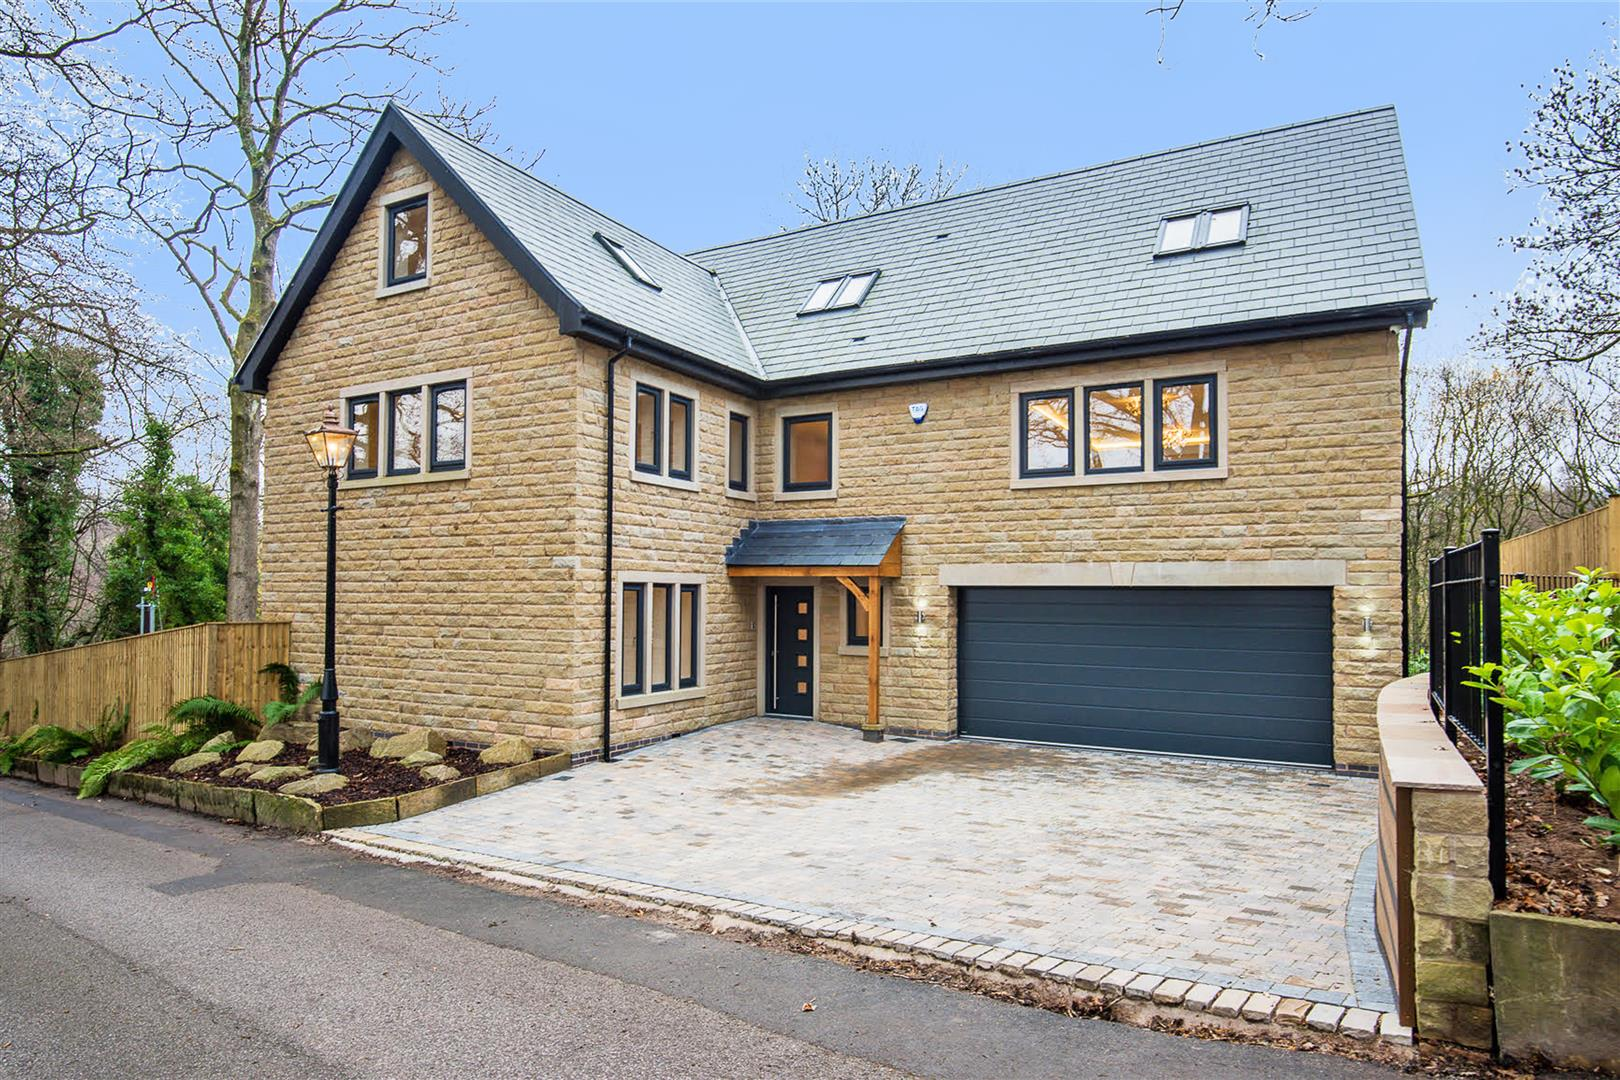 5 Bedroom House Sale Agreed Image 56